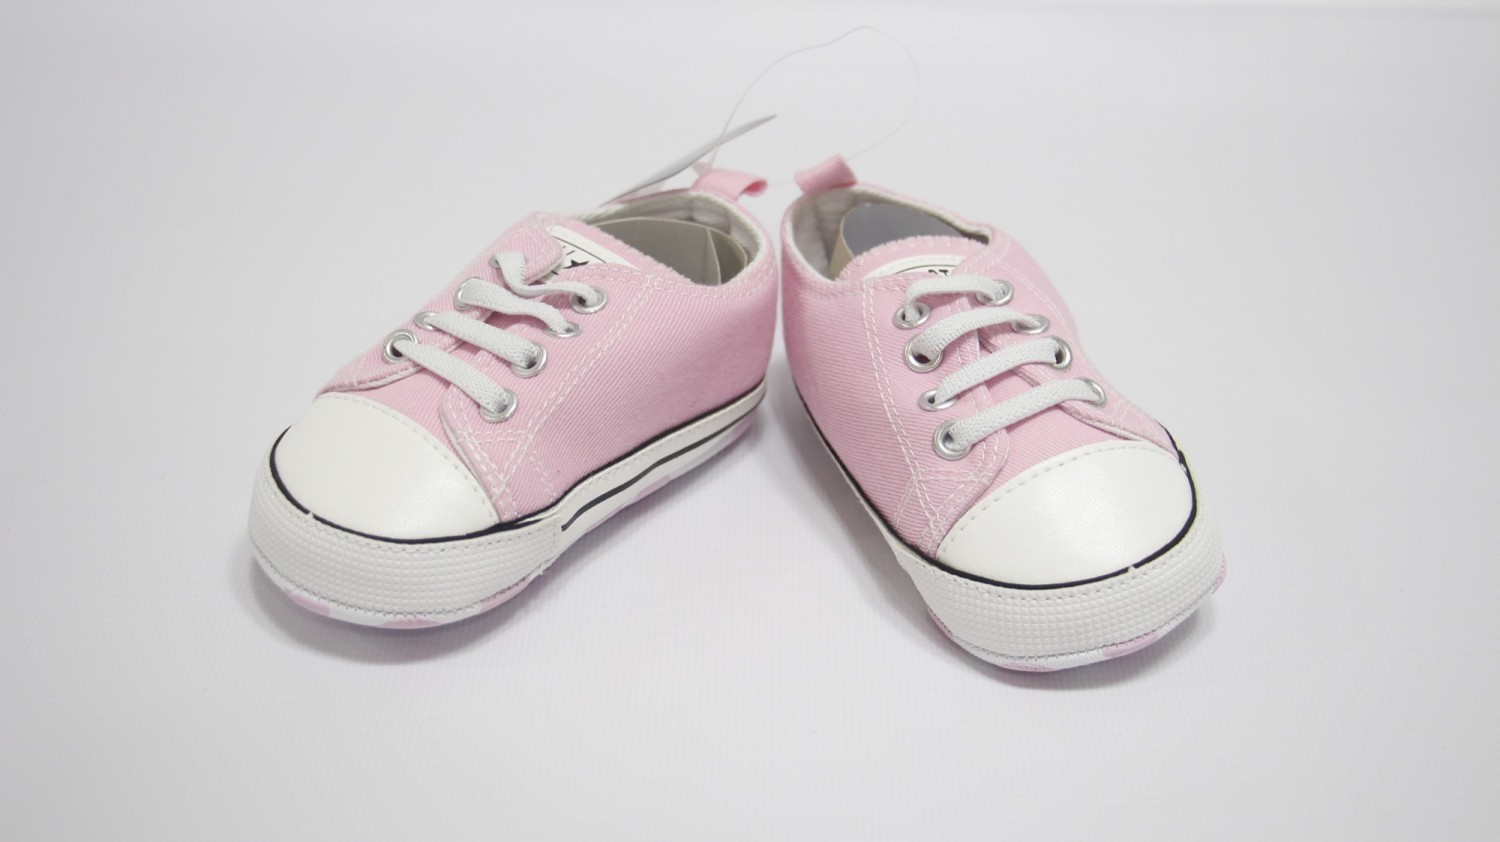 Converse Shoes For Girls Light Pink Buy Shoes Online